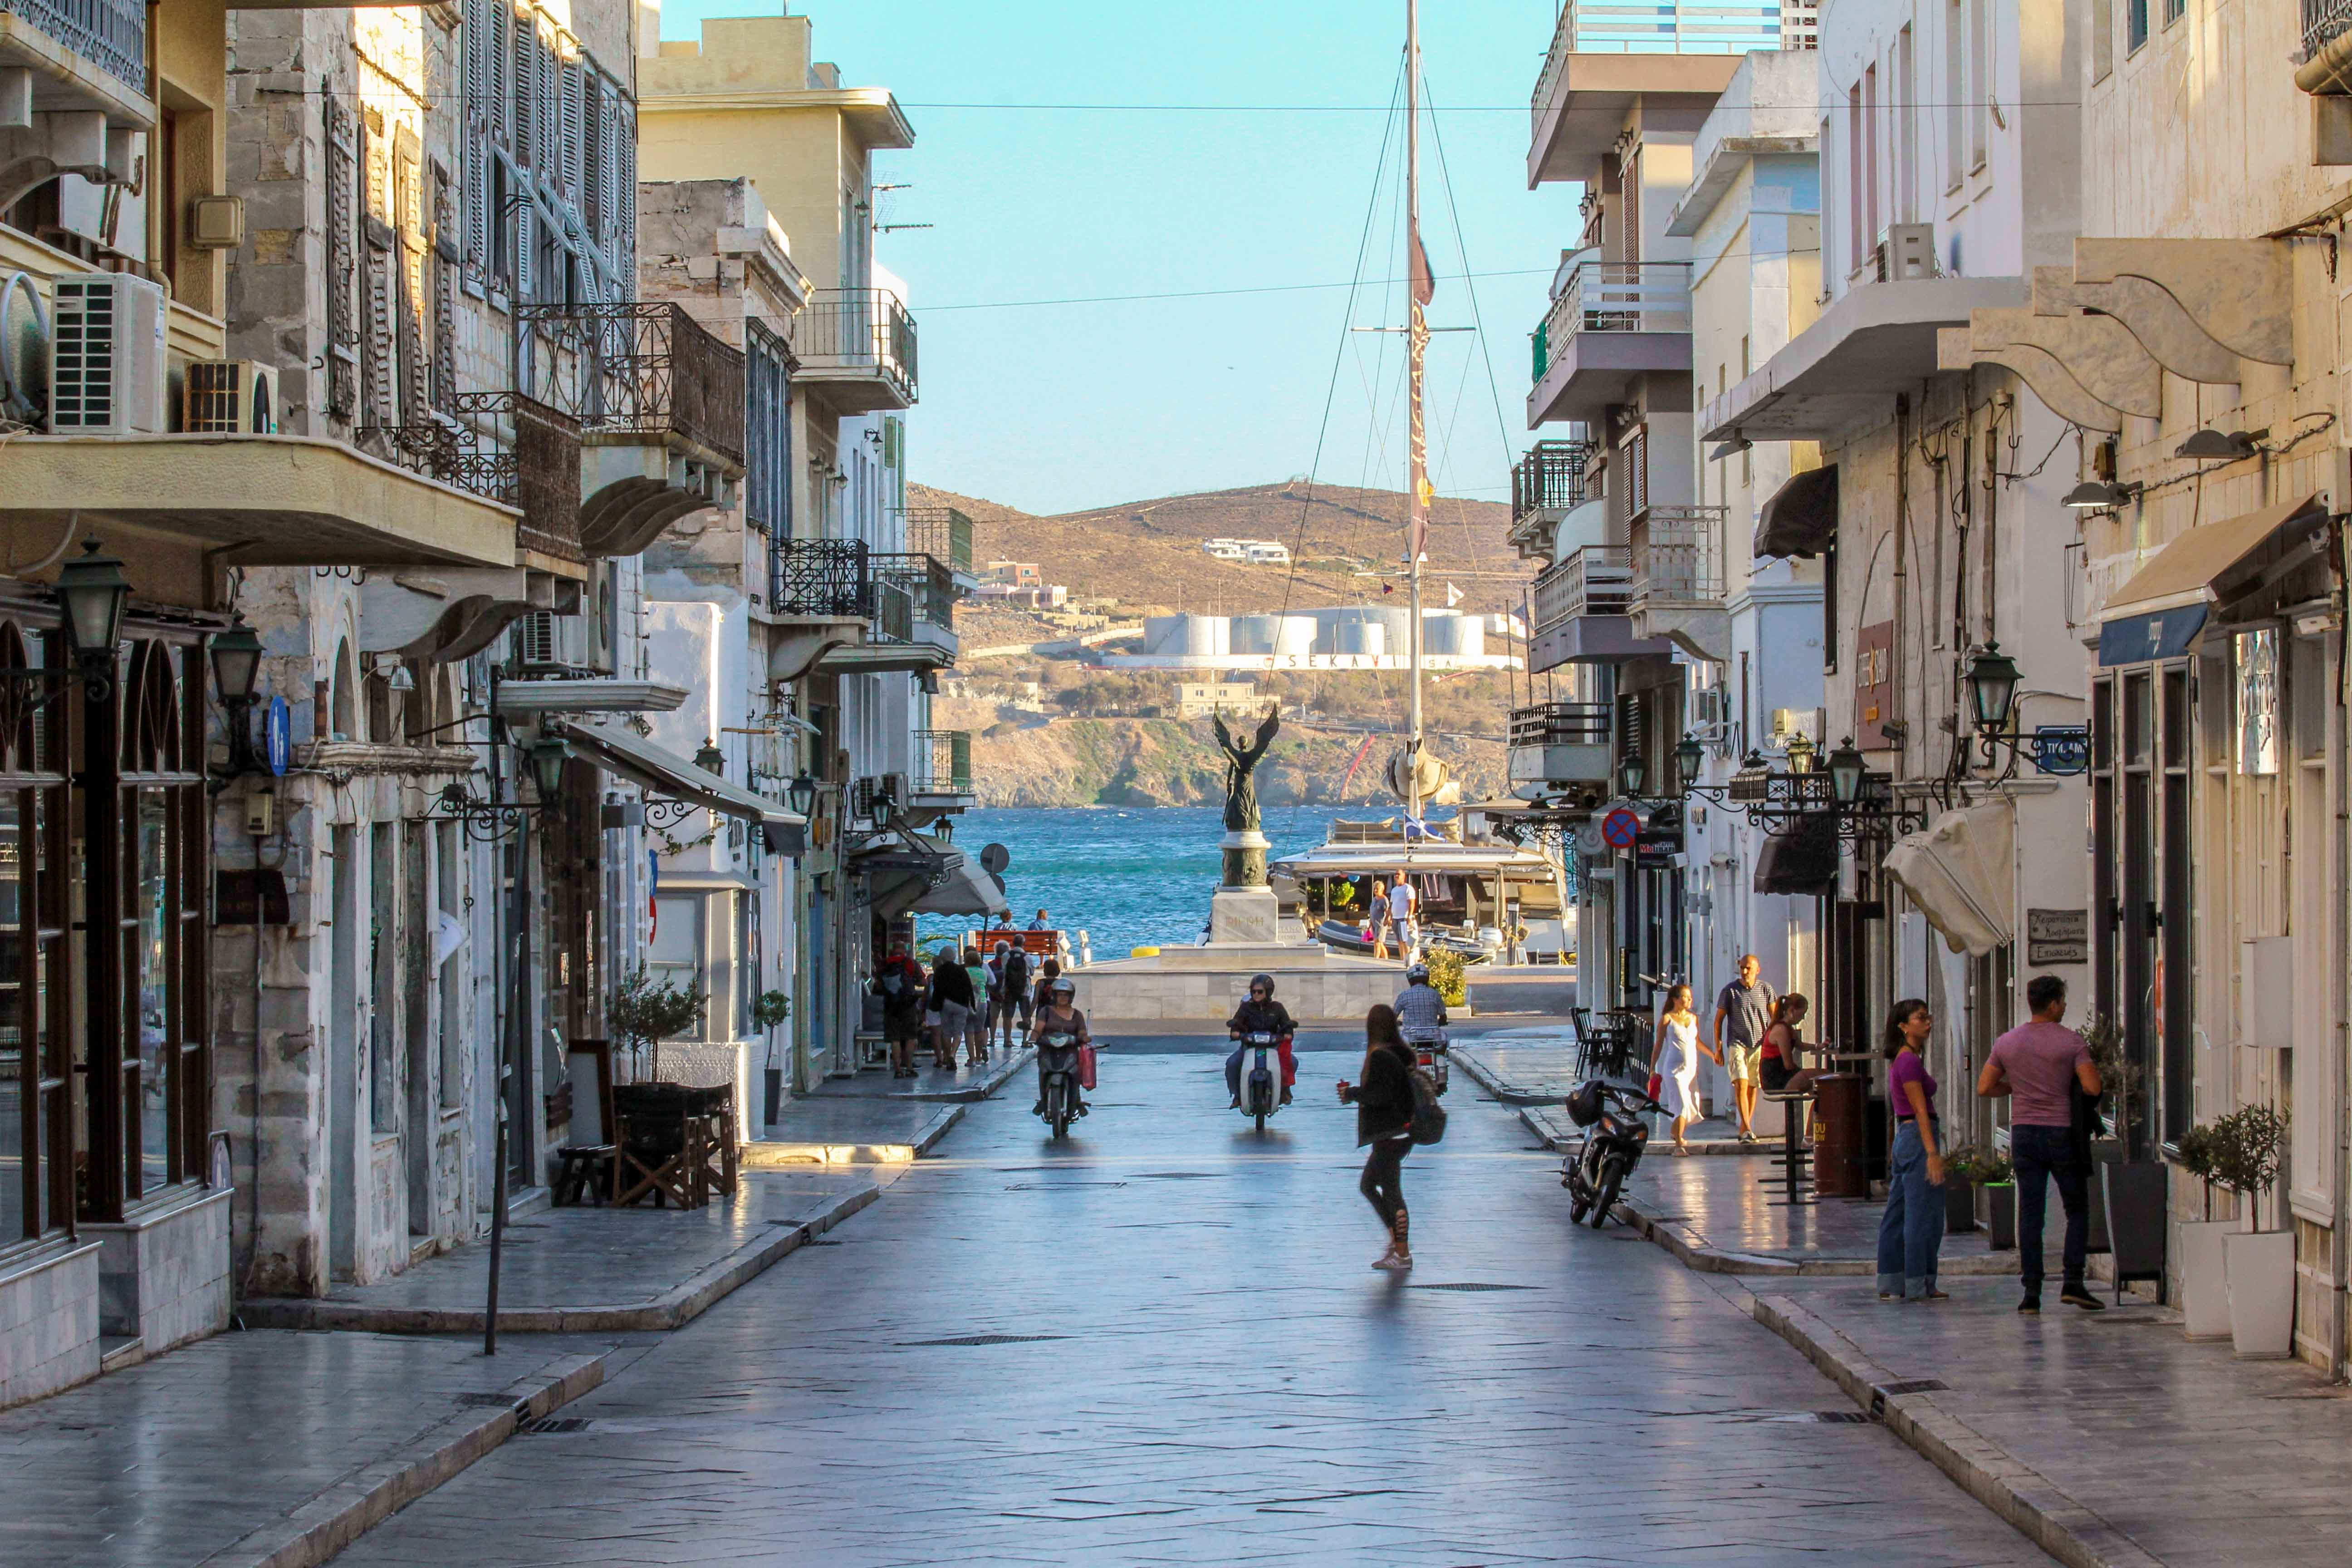 On Syros old meets new. When meandering the charming side streets of Ermoupolis, one finds many quaint cafes and elegant boutique shops.